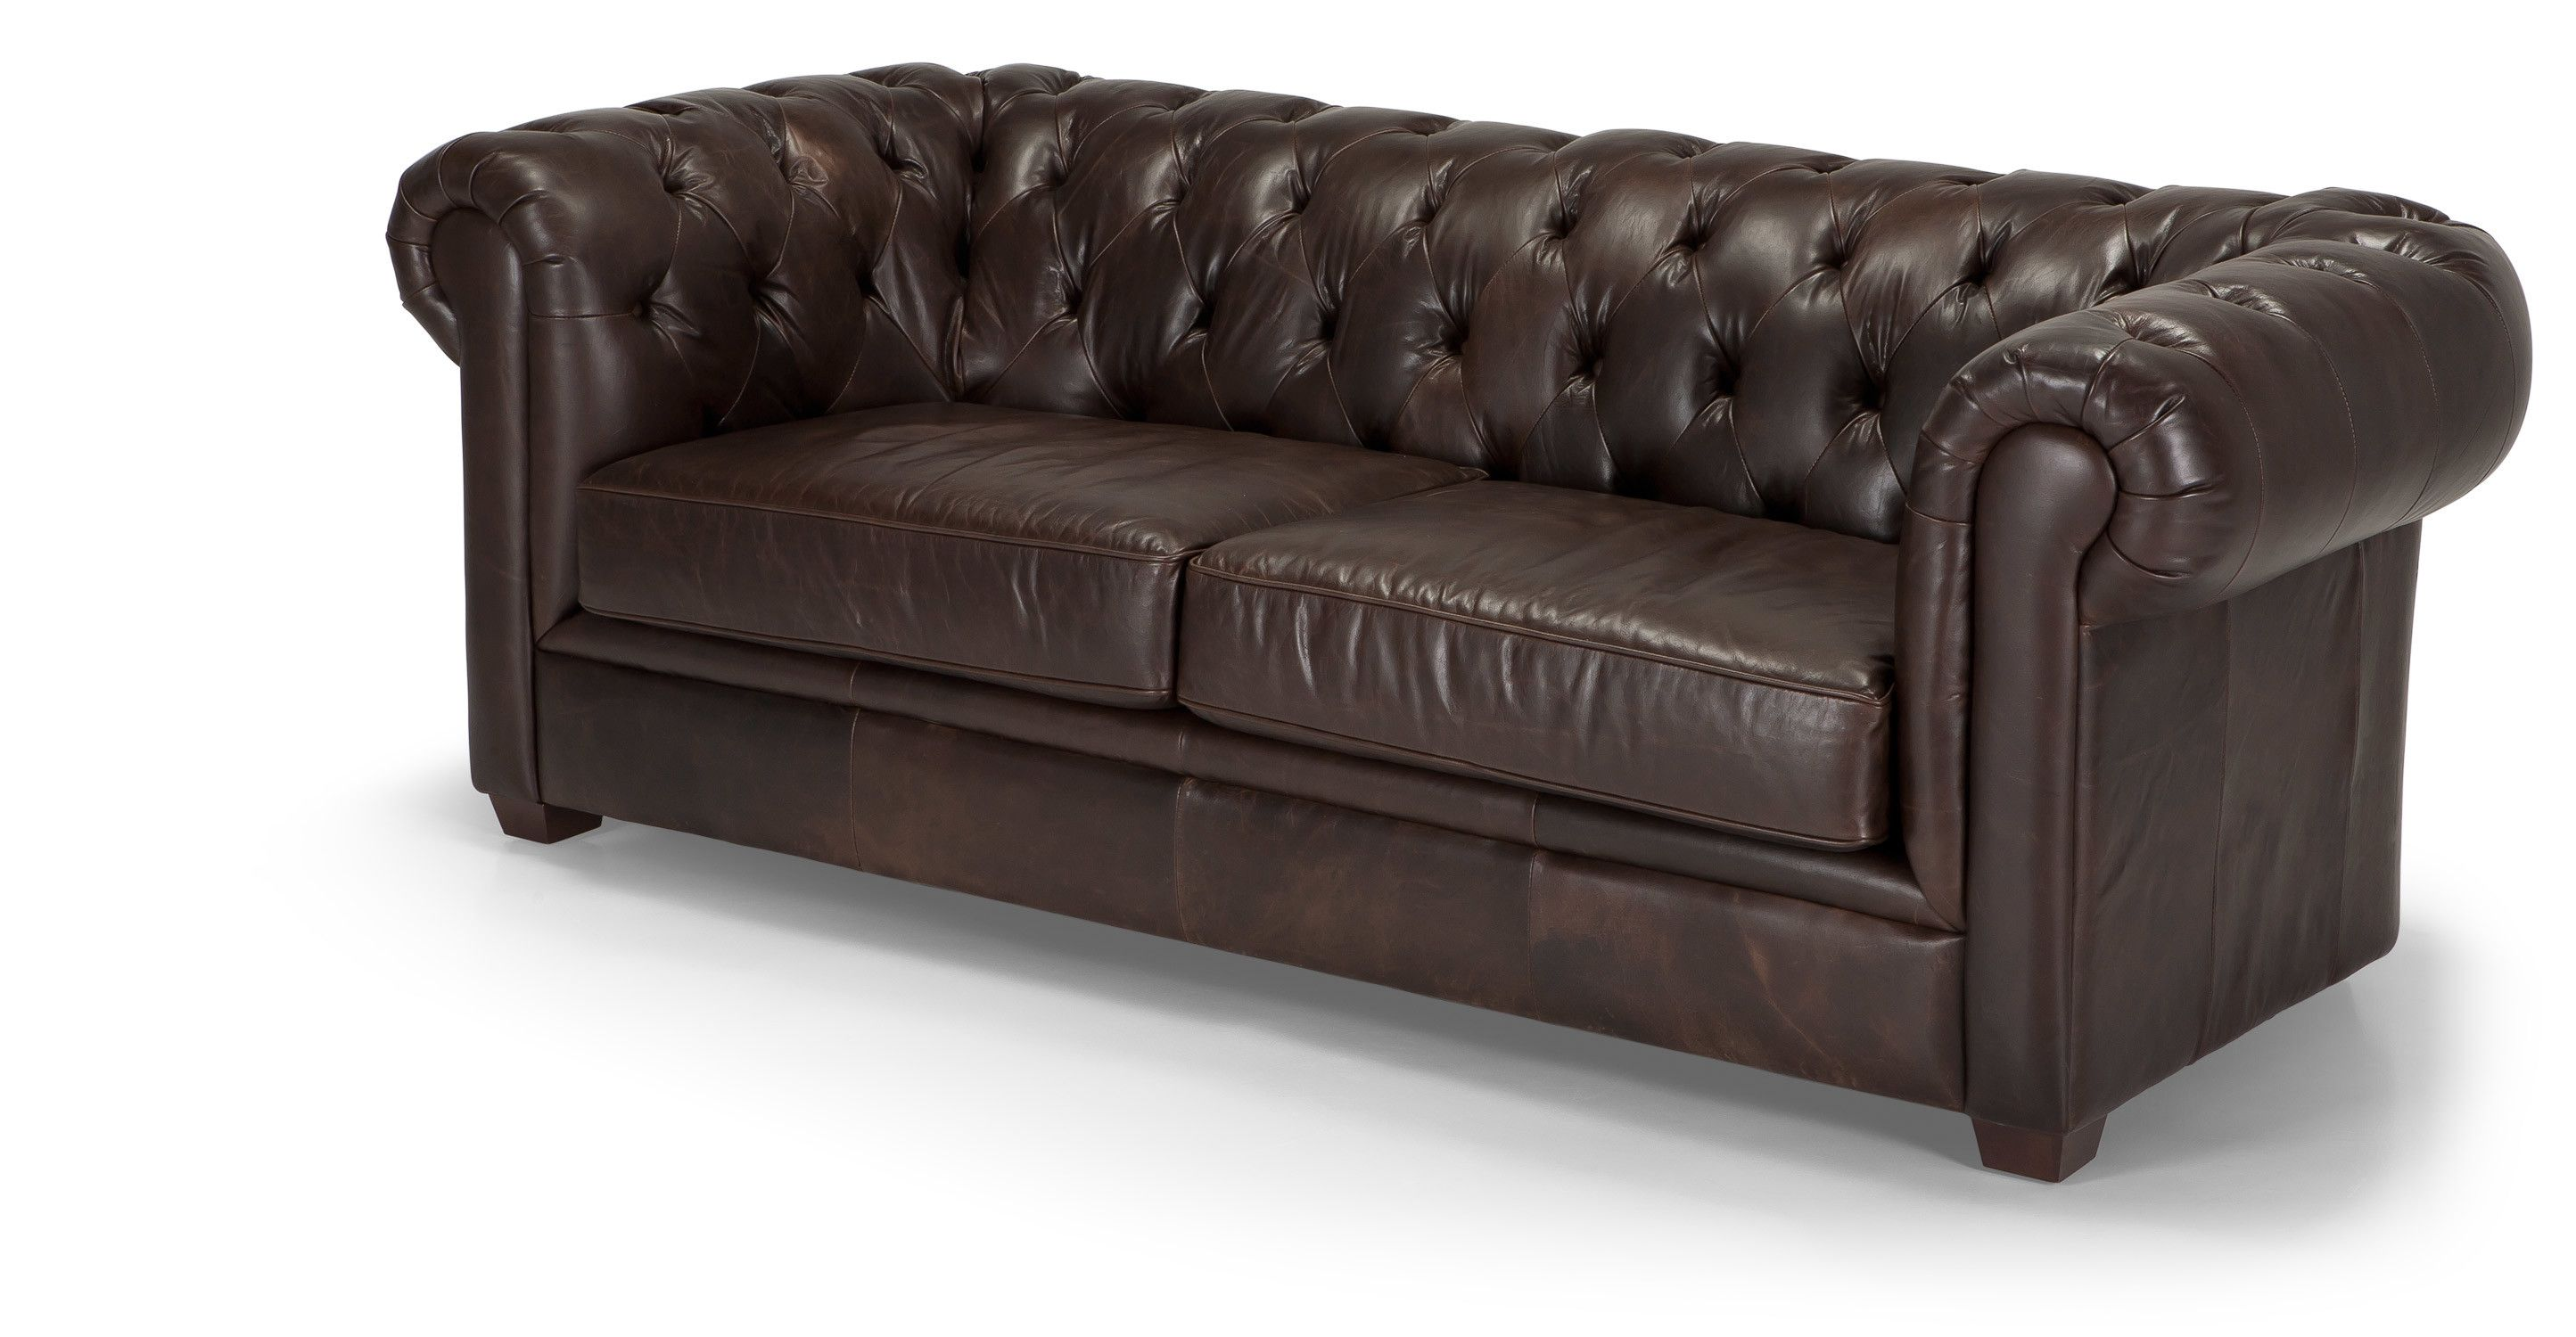 Mayson Canape 3 Places Chesterfield Cuir Brun De Qualite Superieure Canape 3 Places Chesterfield Cuir Brun